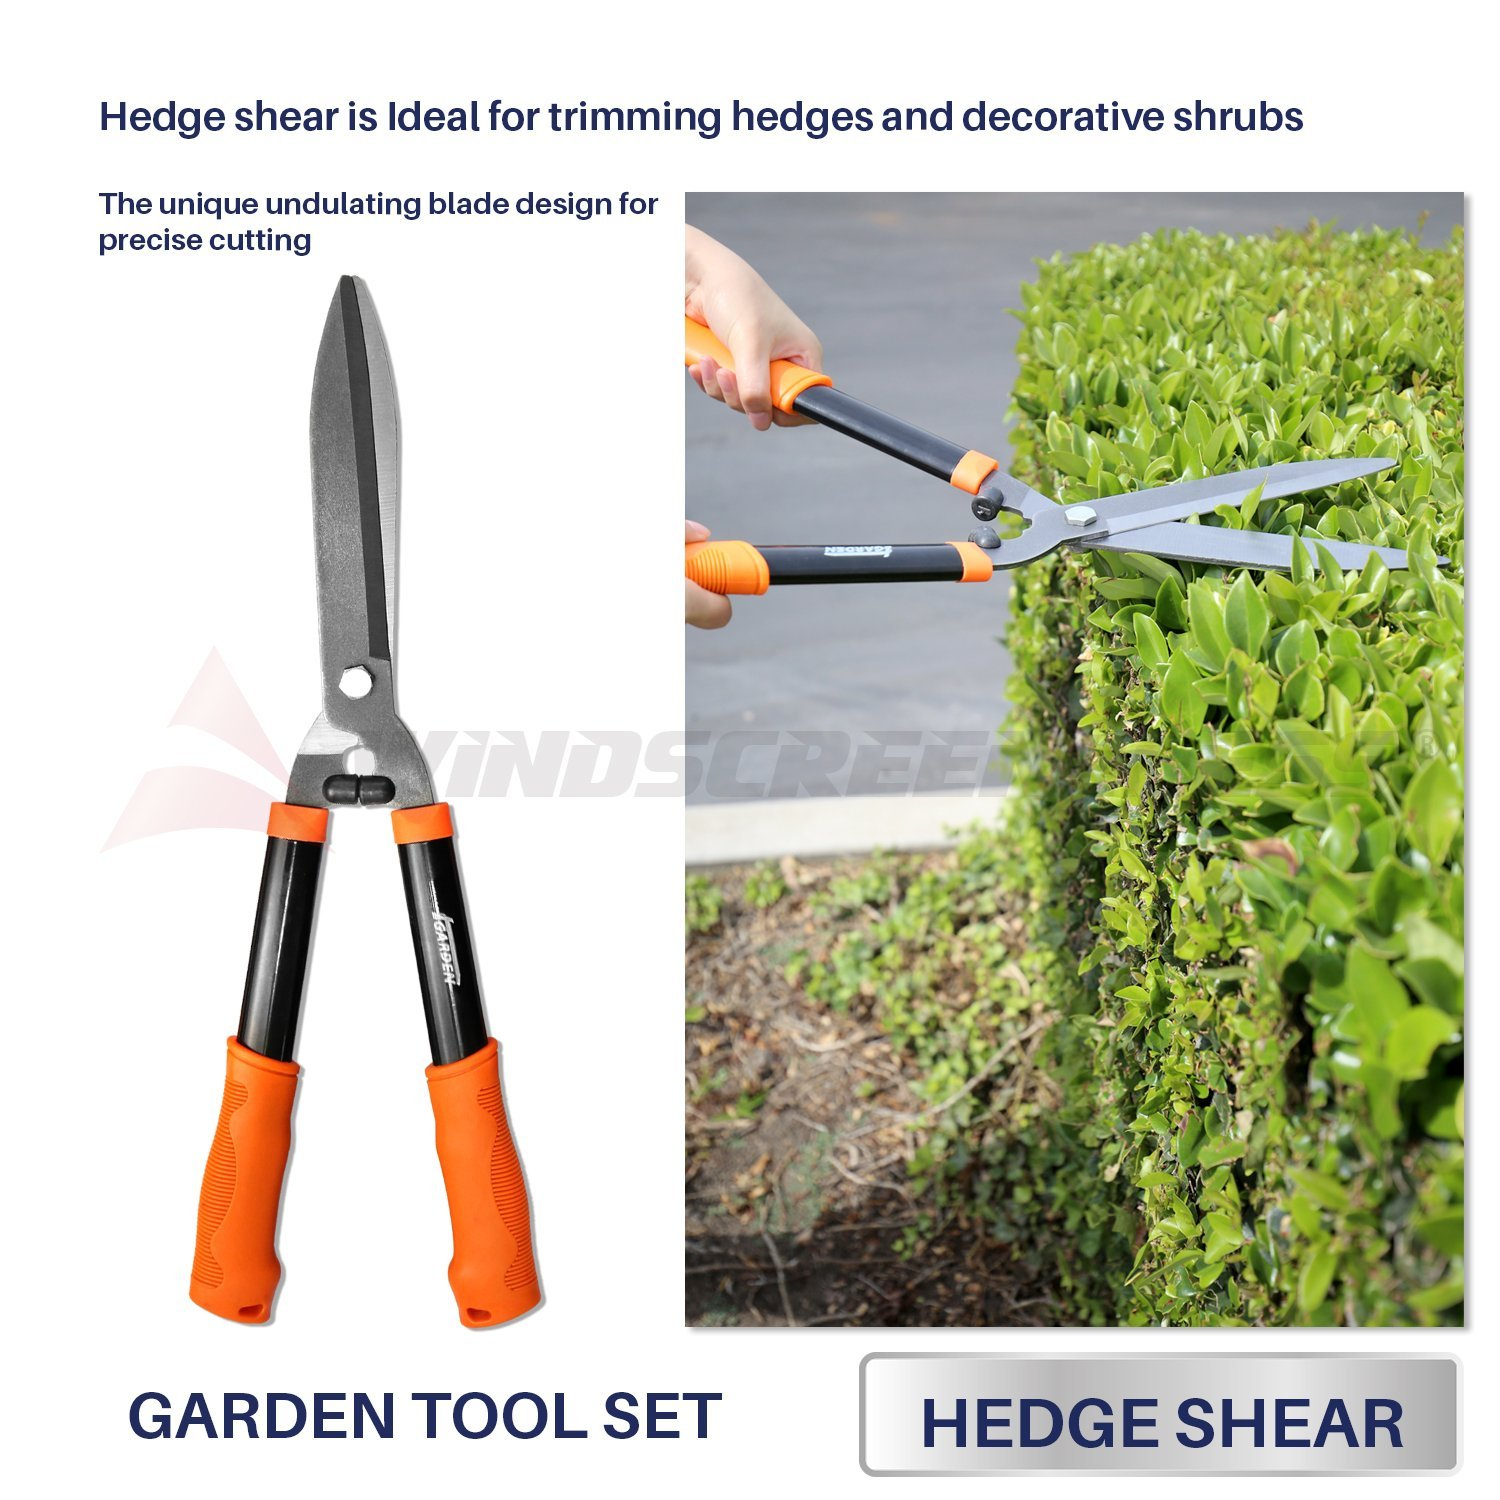 3 PieceWalmartbo Garden Tool Set with Lopper, Hedge Shears and ...